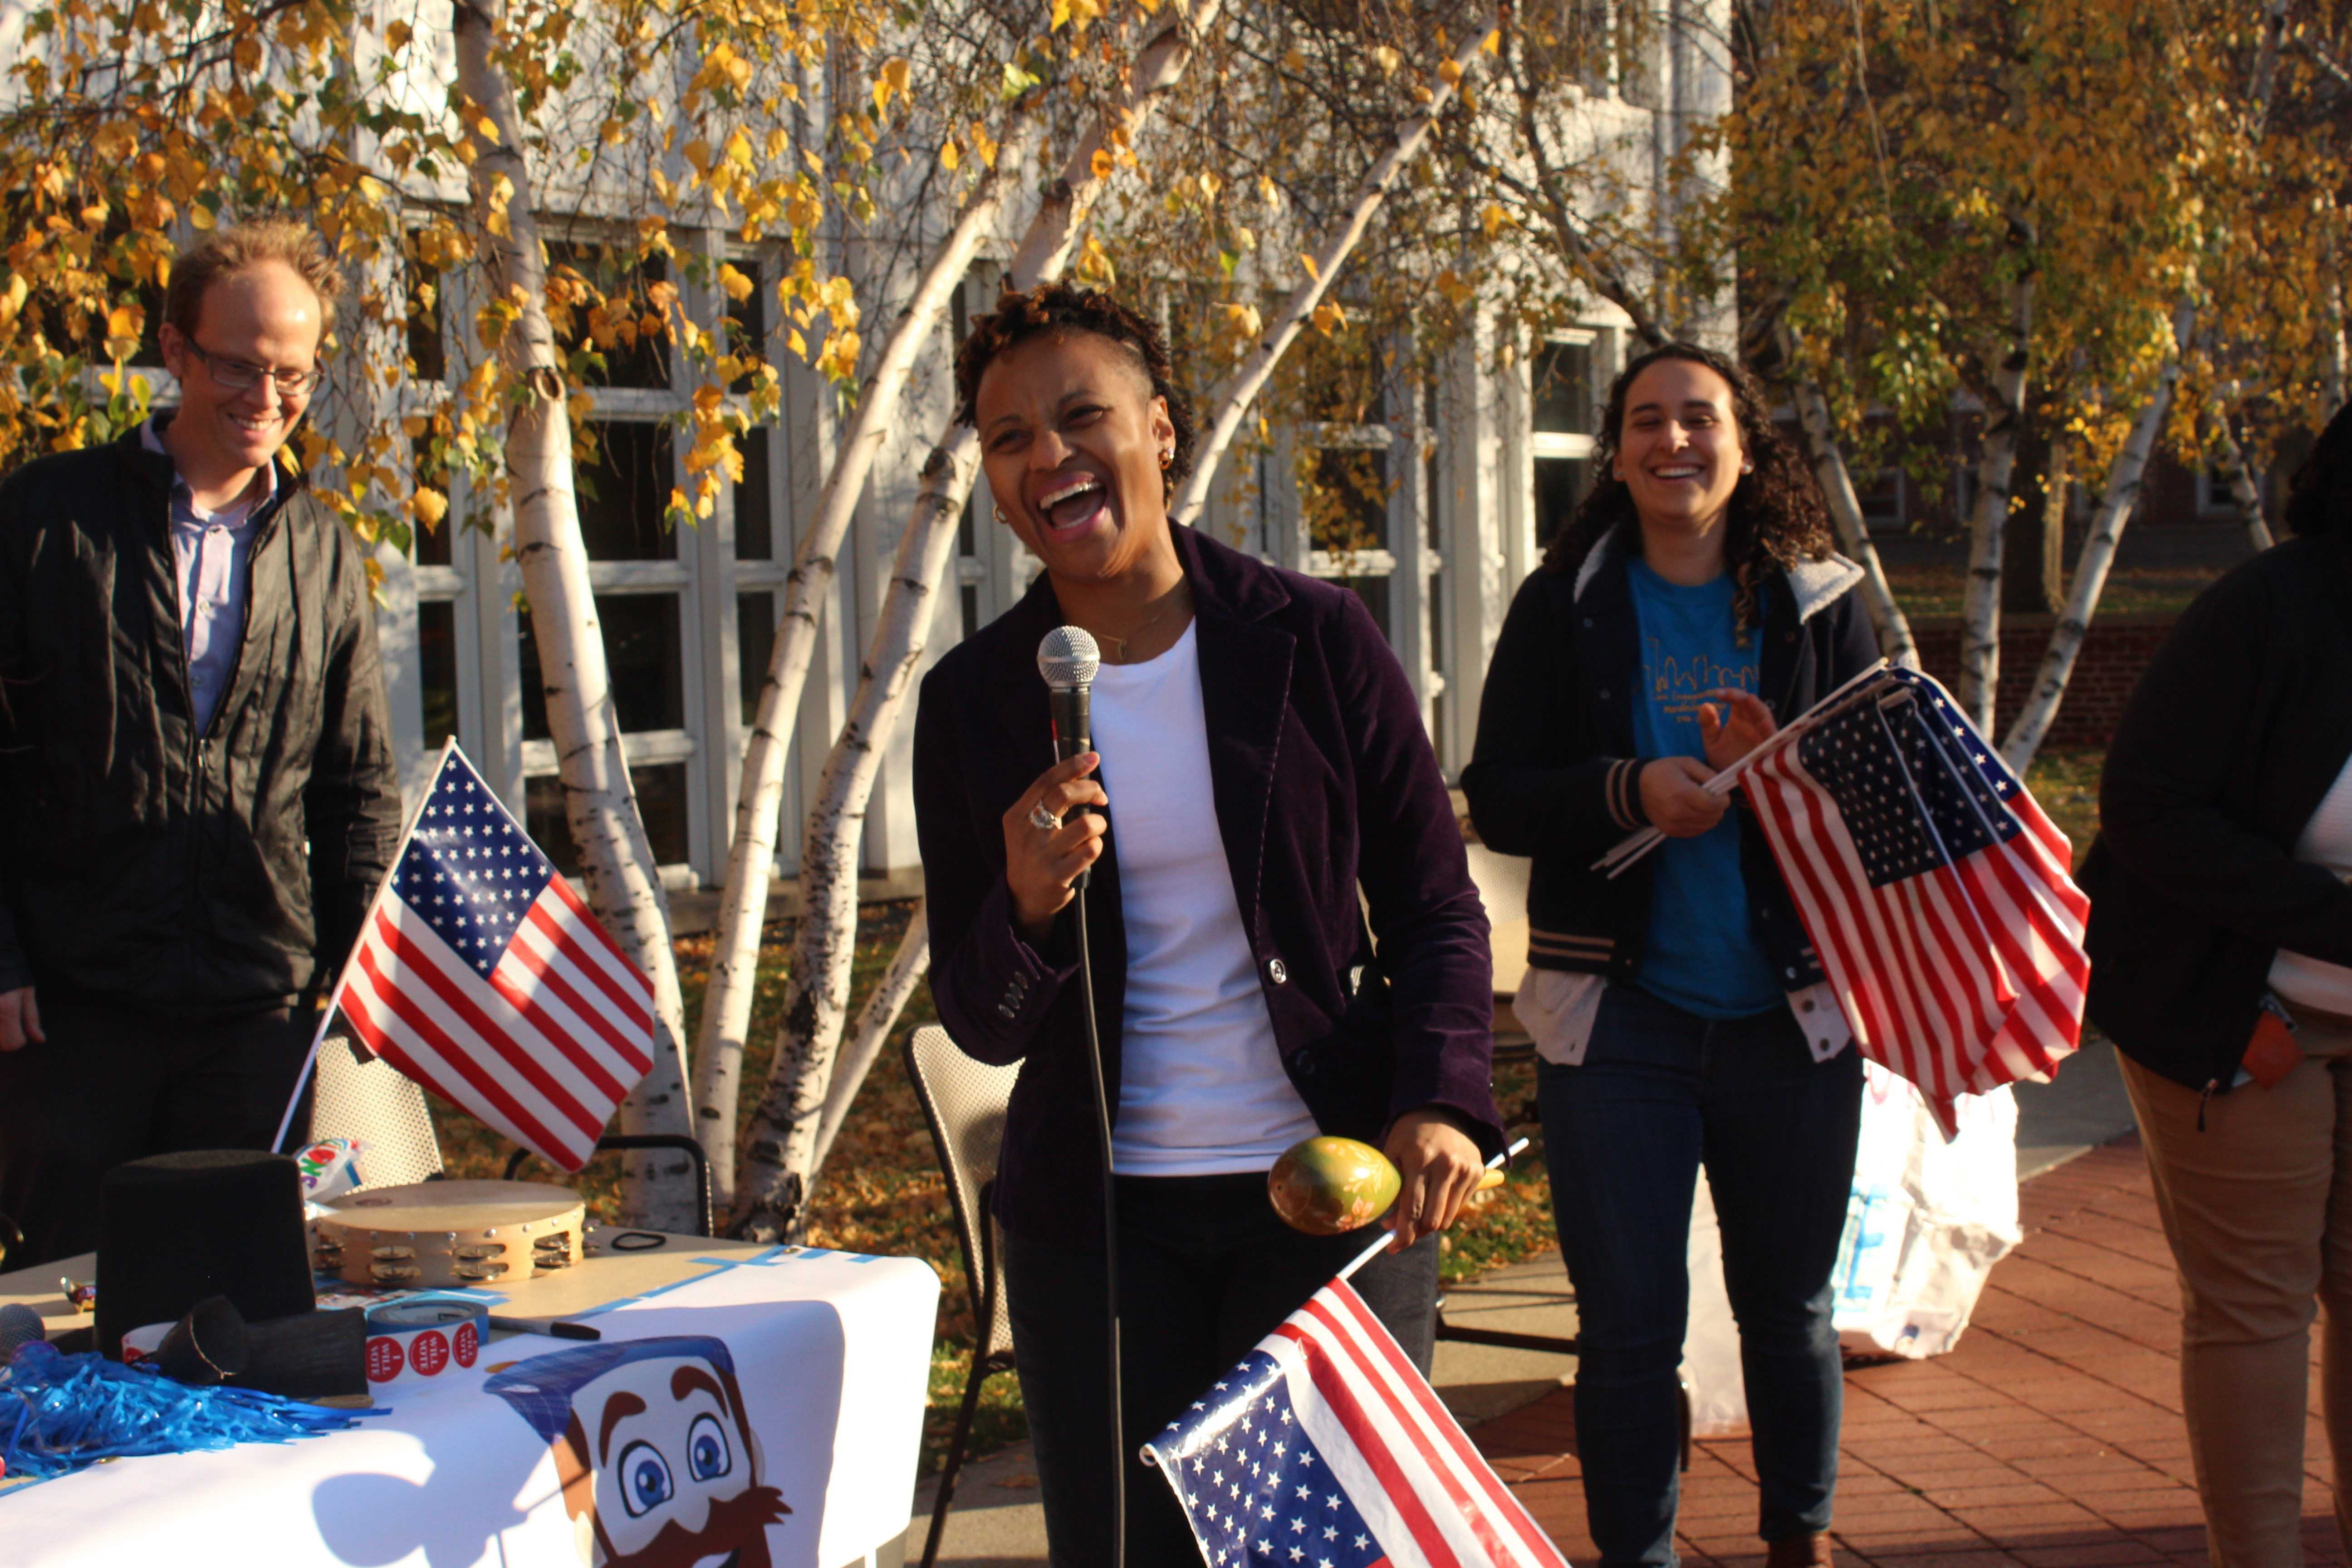 Dean of Students DeMethra LaSha Bradley leads a voting parade on Election Day. Photo by Shireen Zaineb '20.